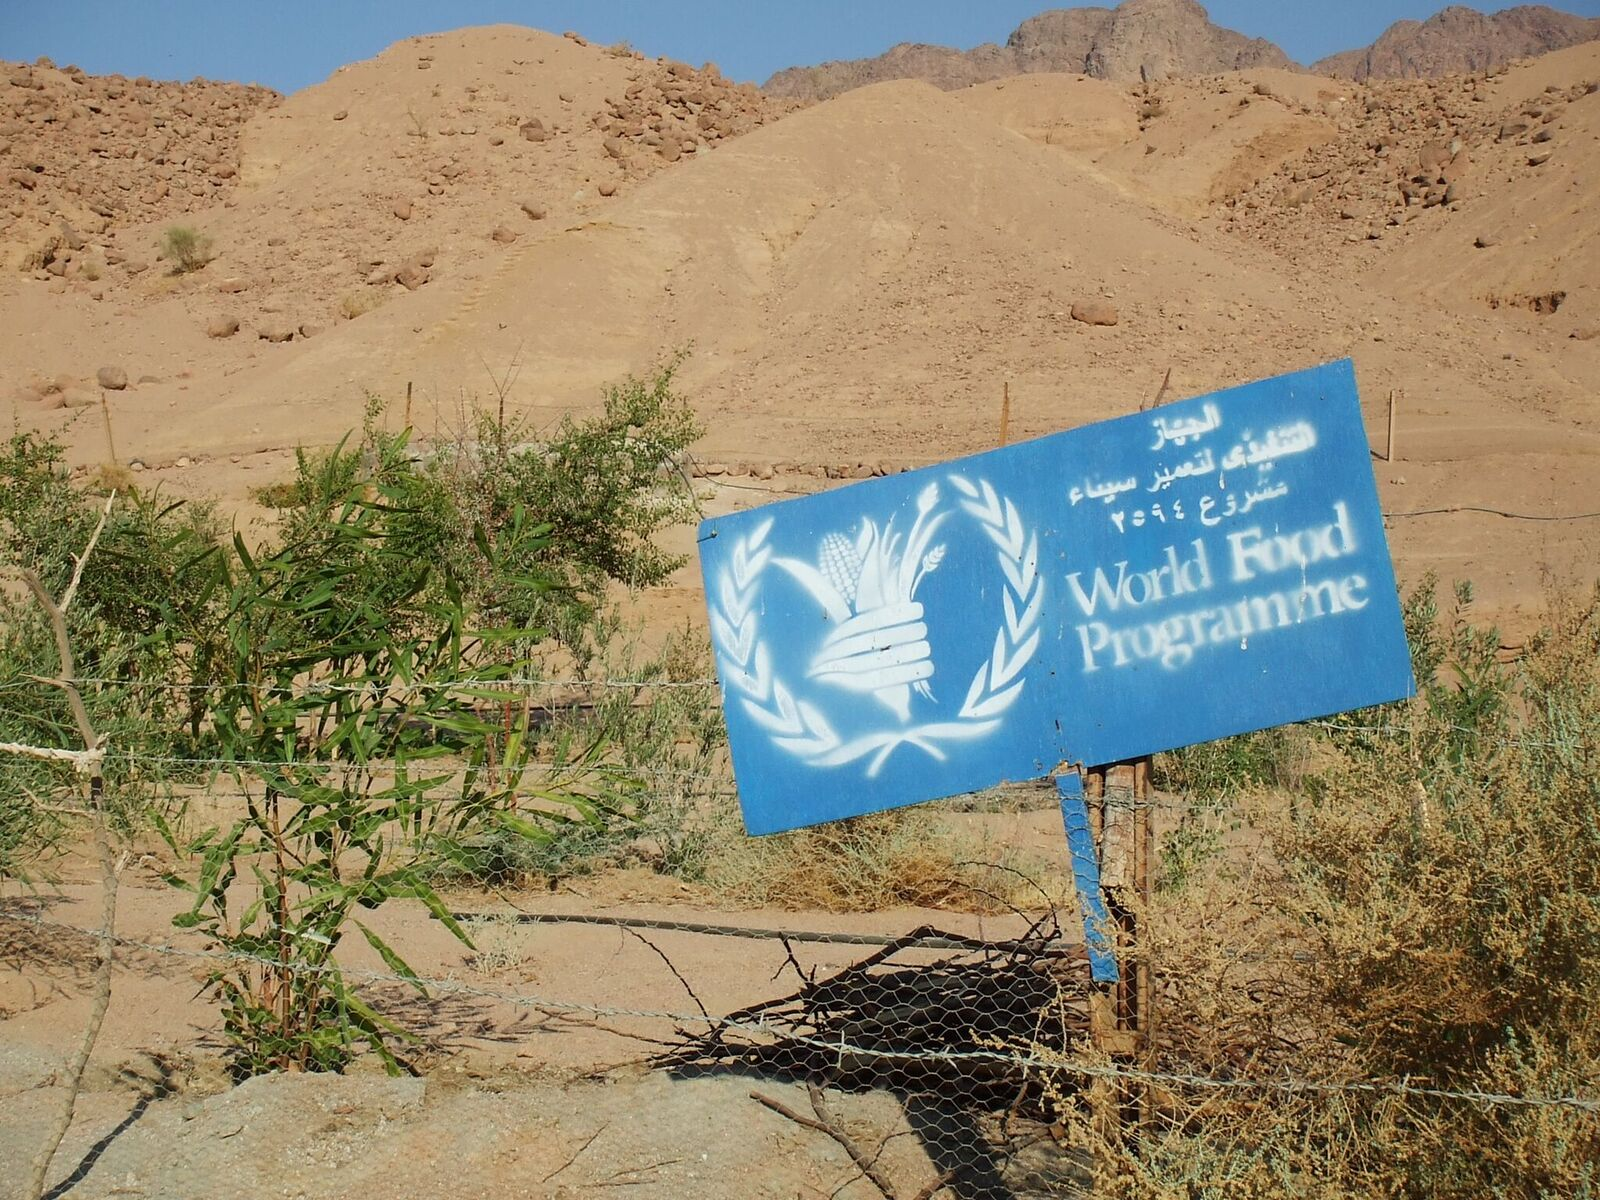 A Bedouin garden sponsored by the WFP. Project funds bring short-term relief but Bedu need lasting change